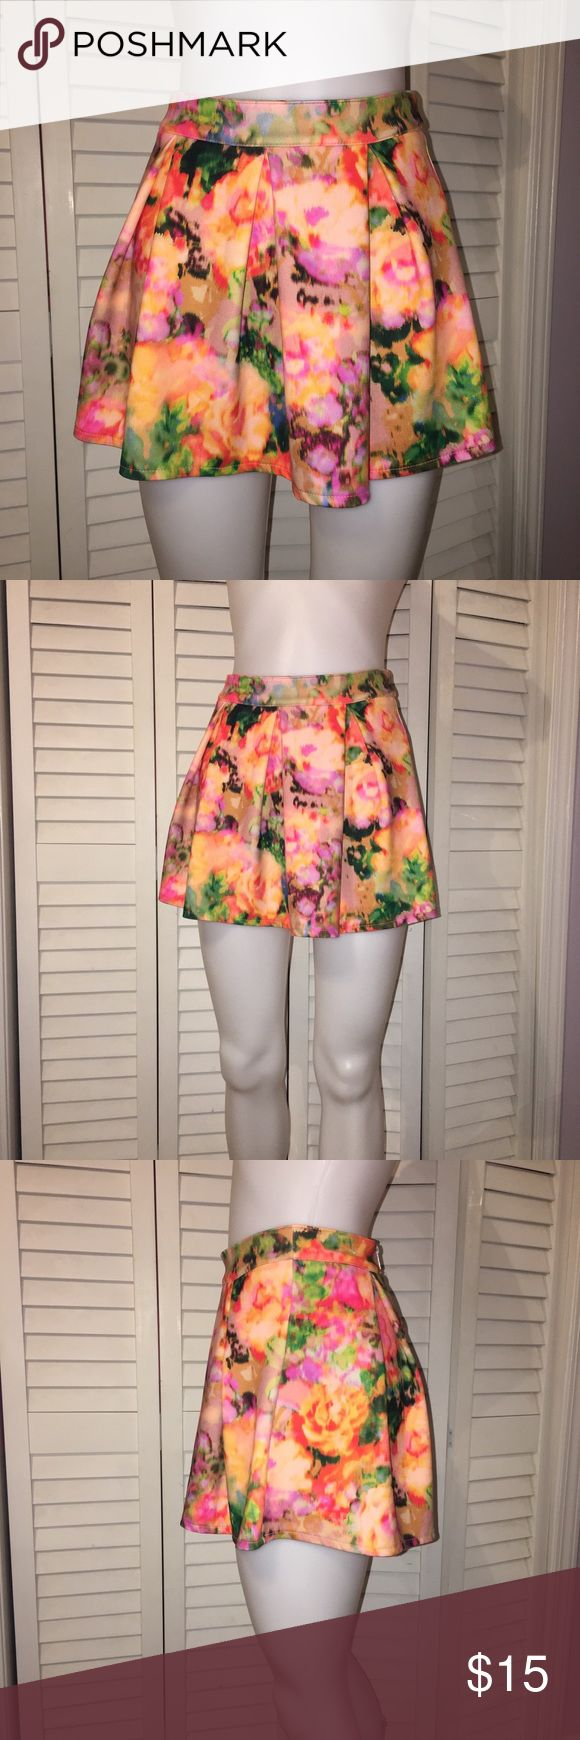 Aeropostale Floral Print Mini Skirt Brand new without the tags! I wore it once. Aeropostale Skirts Mini